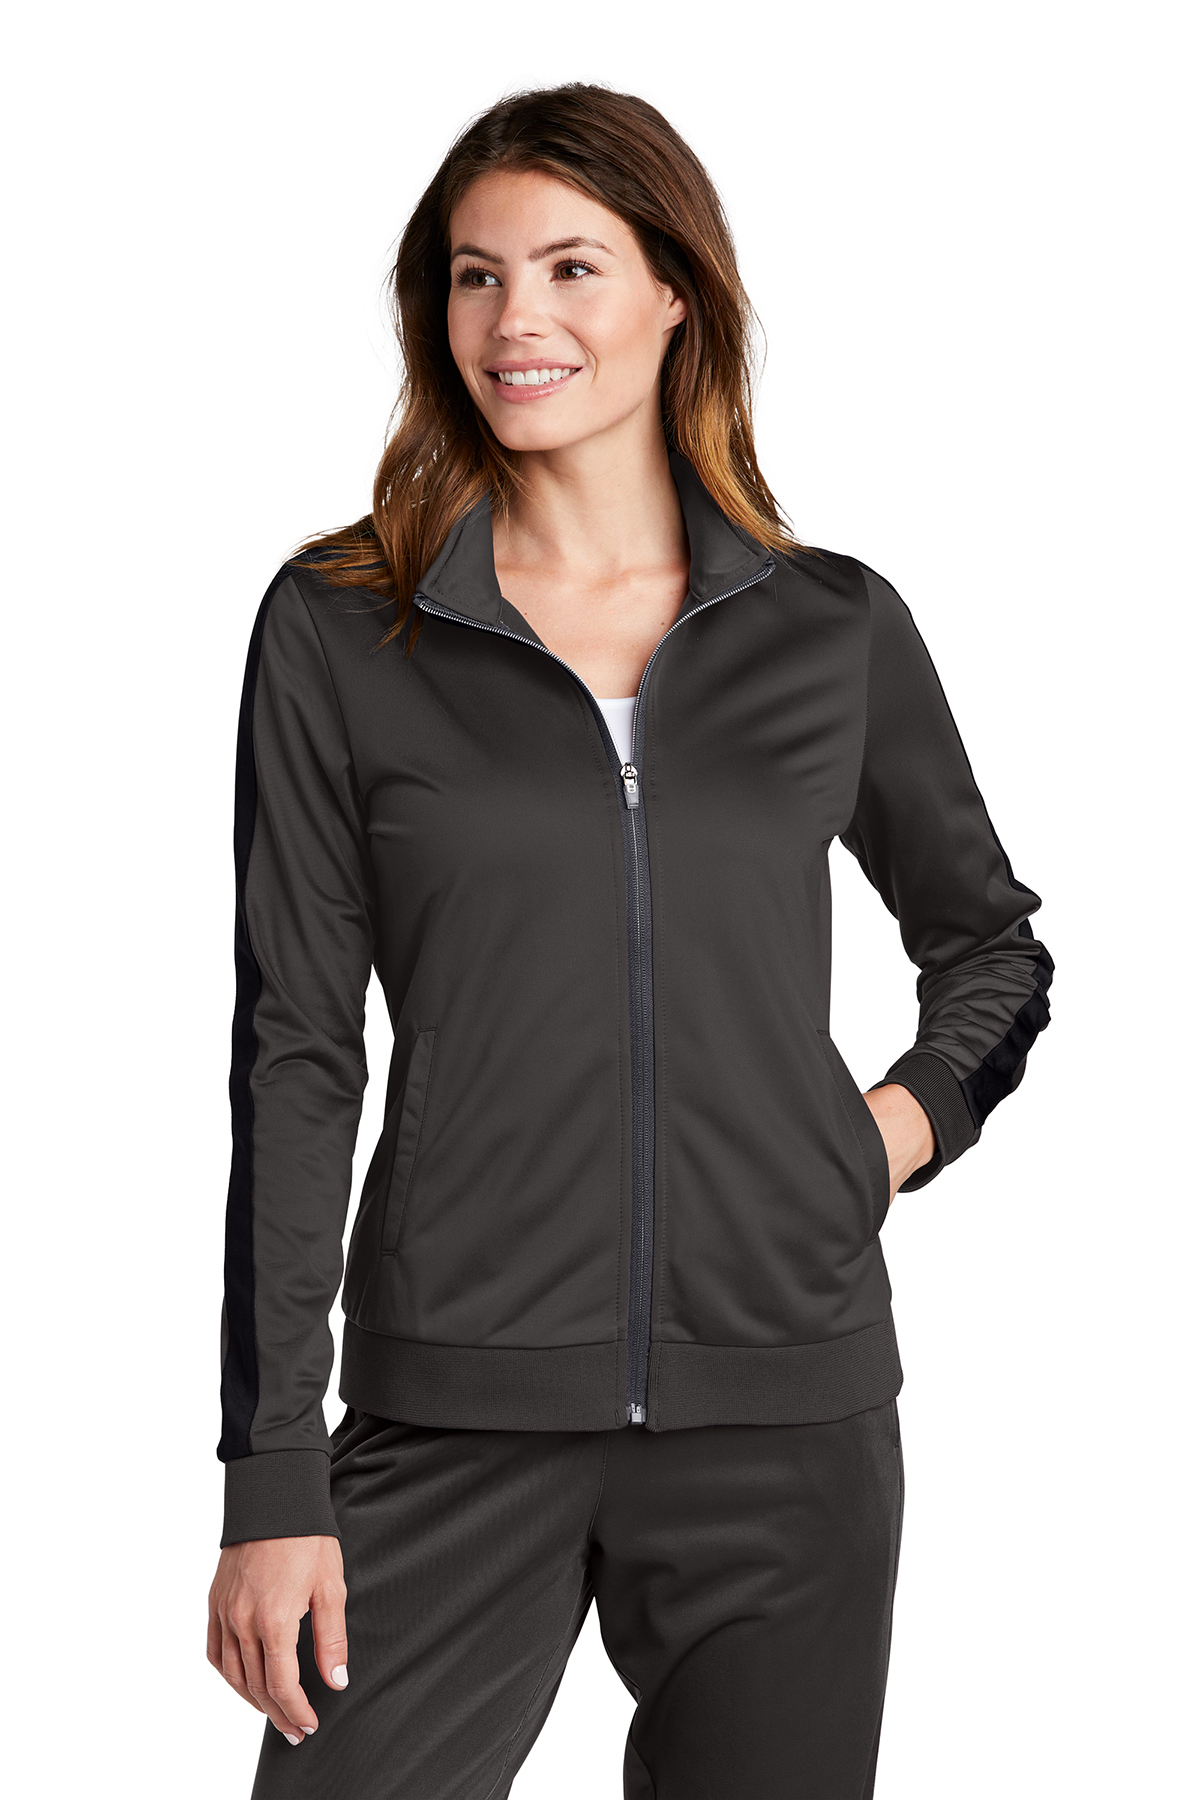 Sport Tek Ladies Tricot Track Jacket Ladies Women Activewear Sport Tek Poshmark makes shopping fun, affordable & easy! sport tek ladies tricot track jacket ladies women activewear sport tek